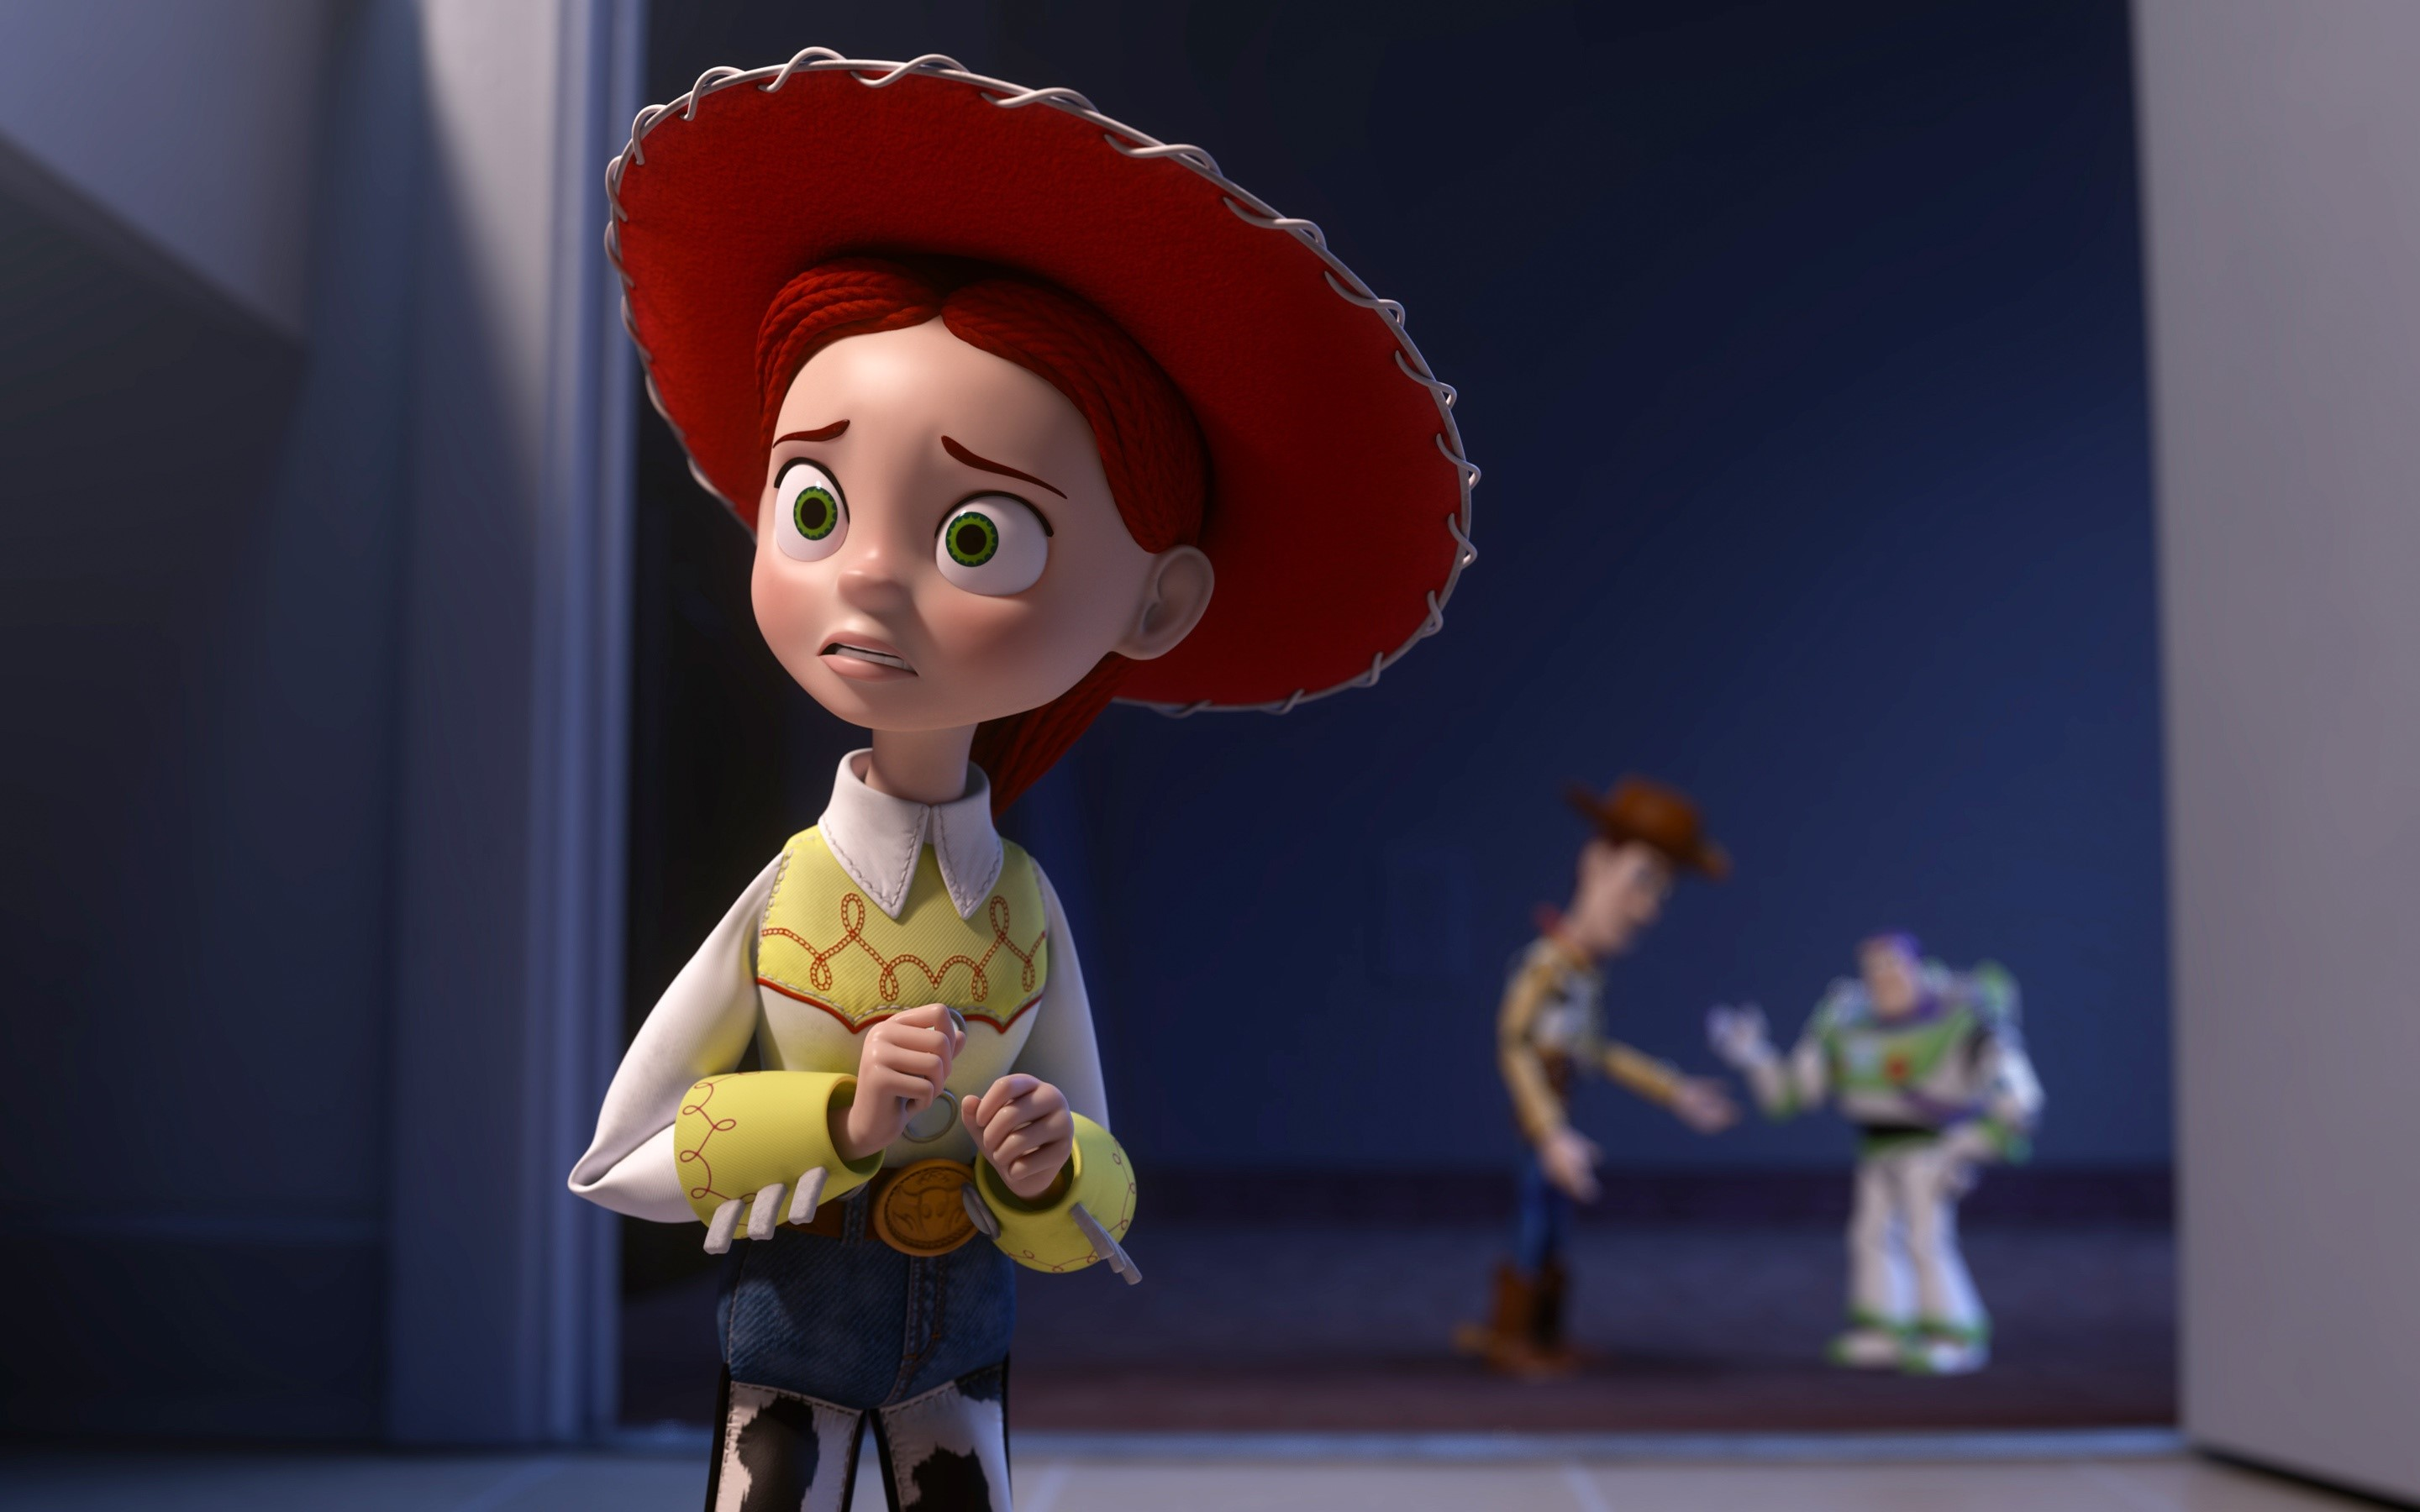 Wallpaper Jessie en Toy Story de Terror Images